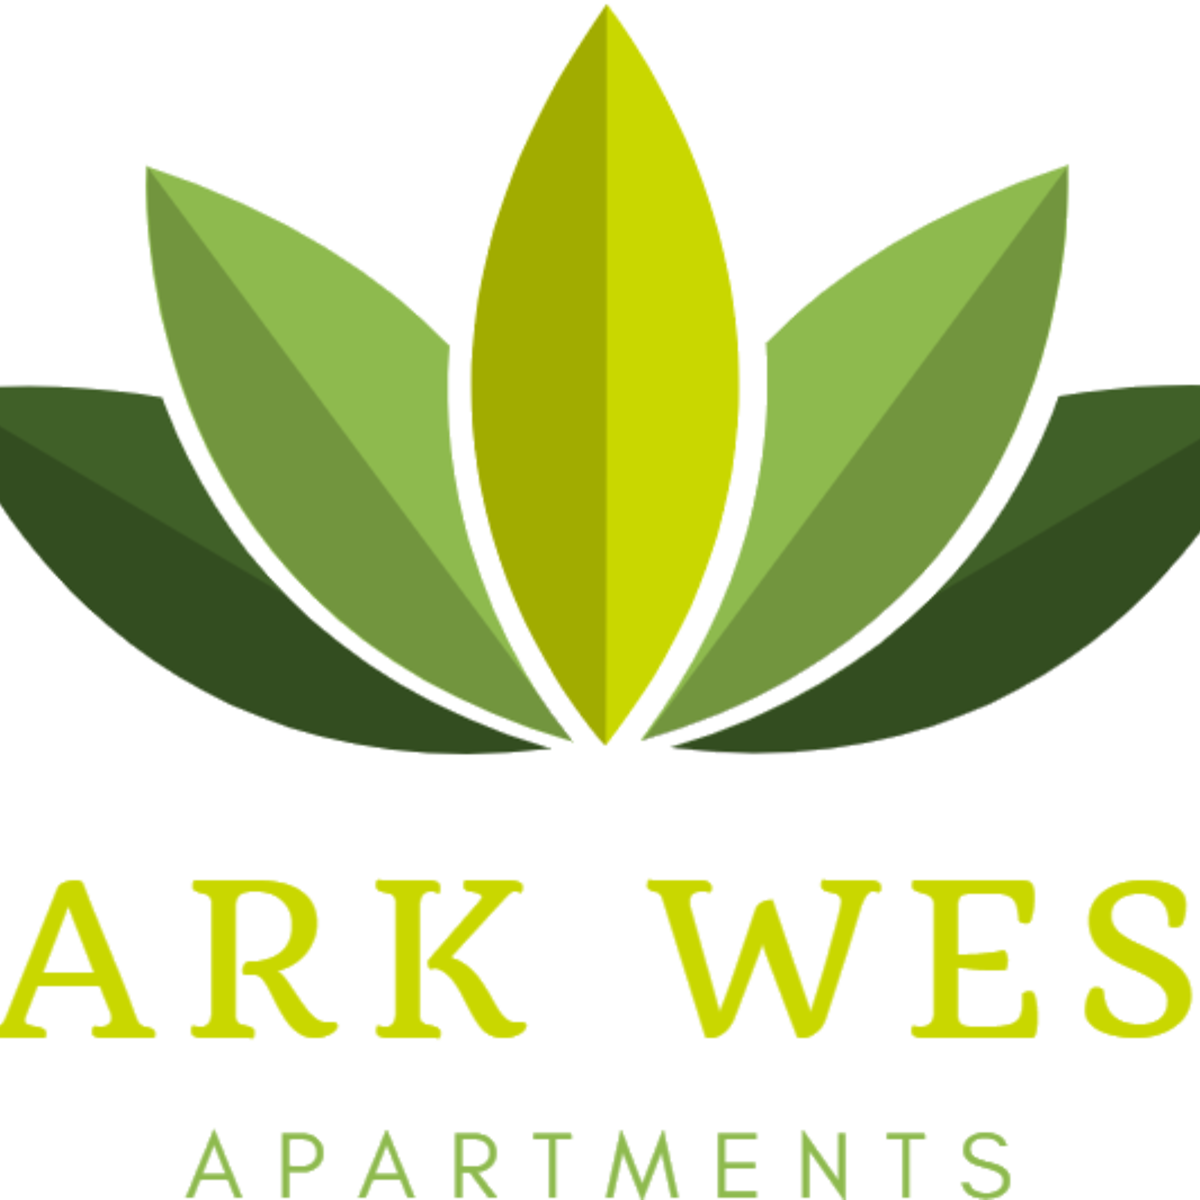 Apartments For Rent In Bellflower Ca: Apartments For Rent In Bellflower, CA